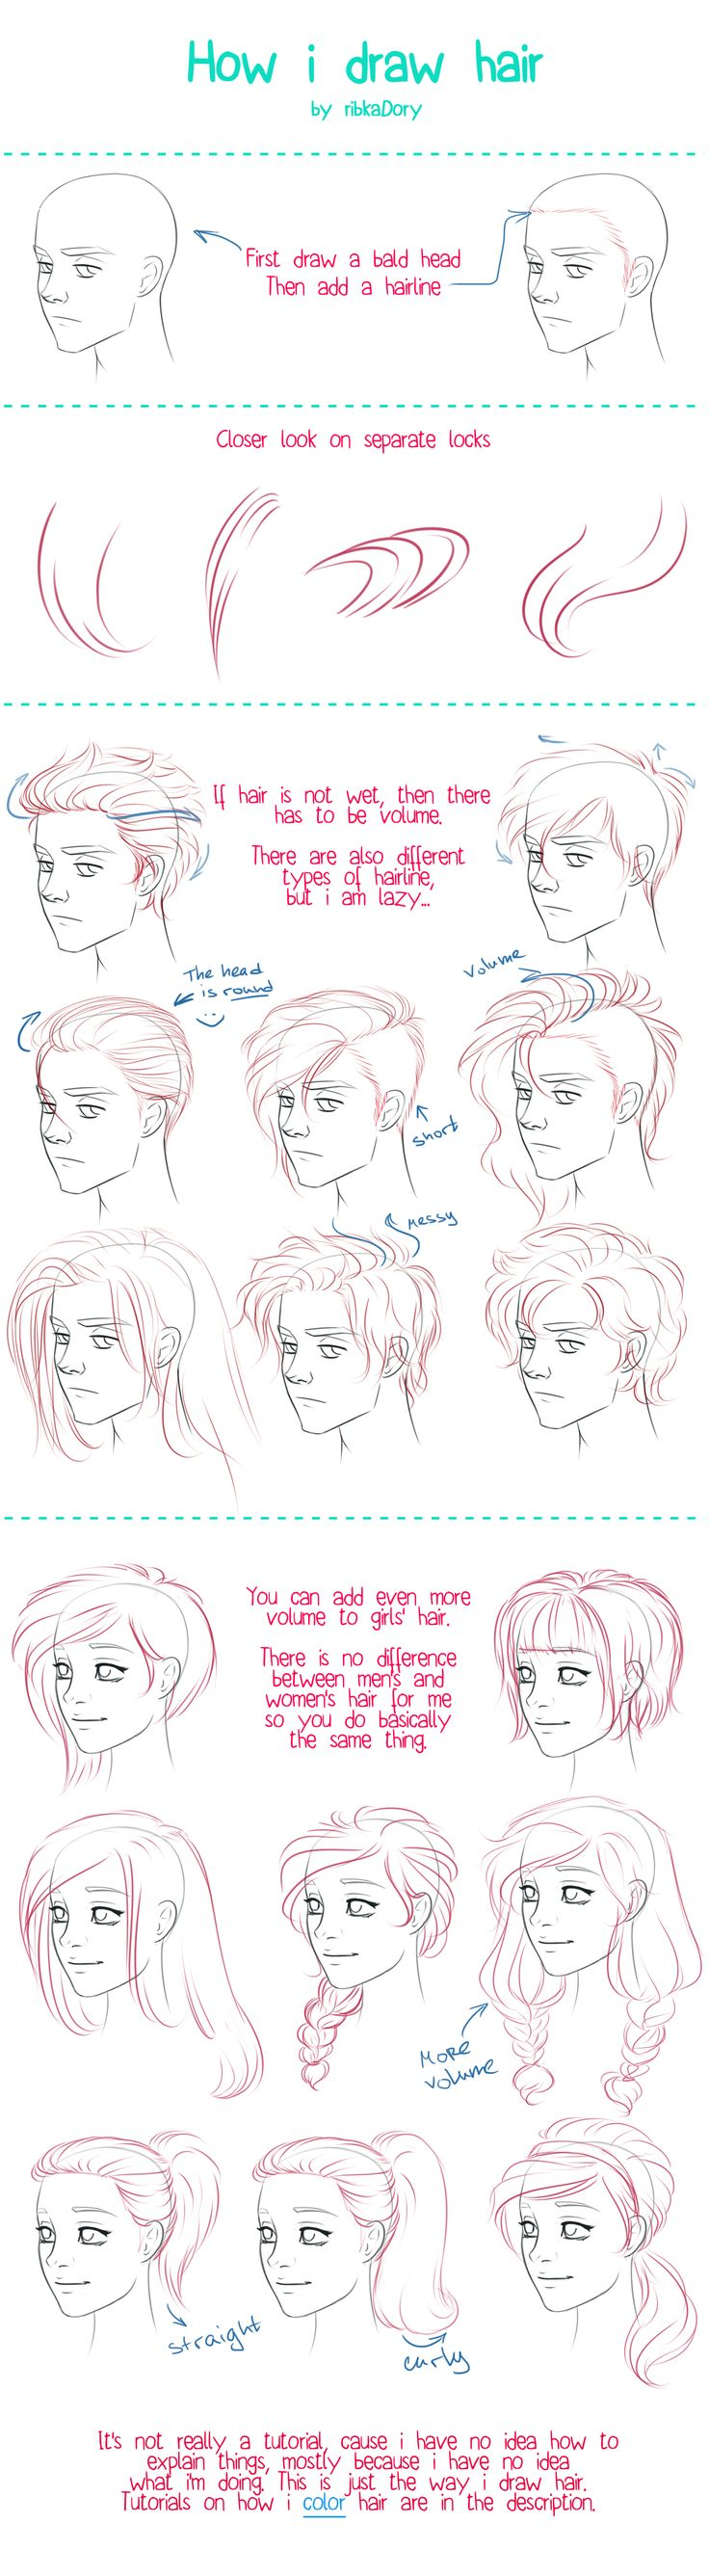 Hair for reference